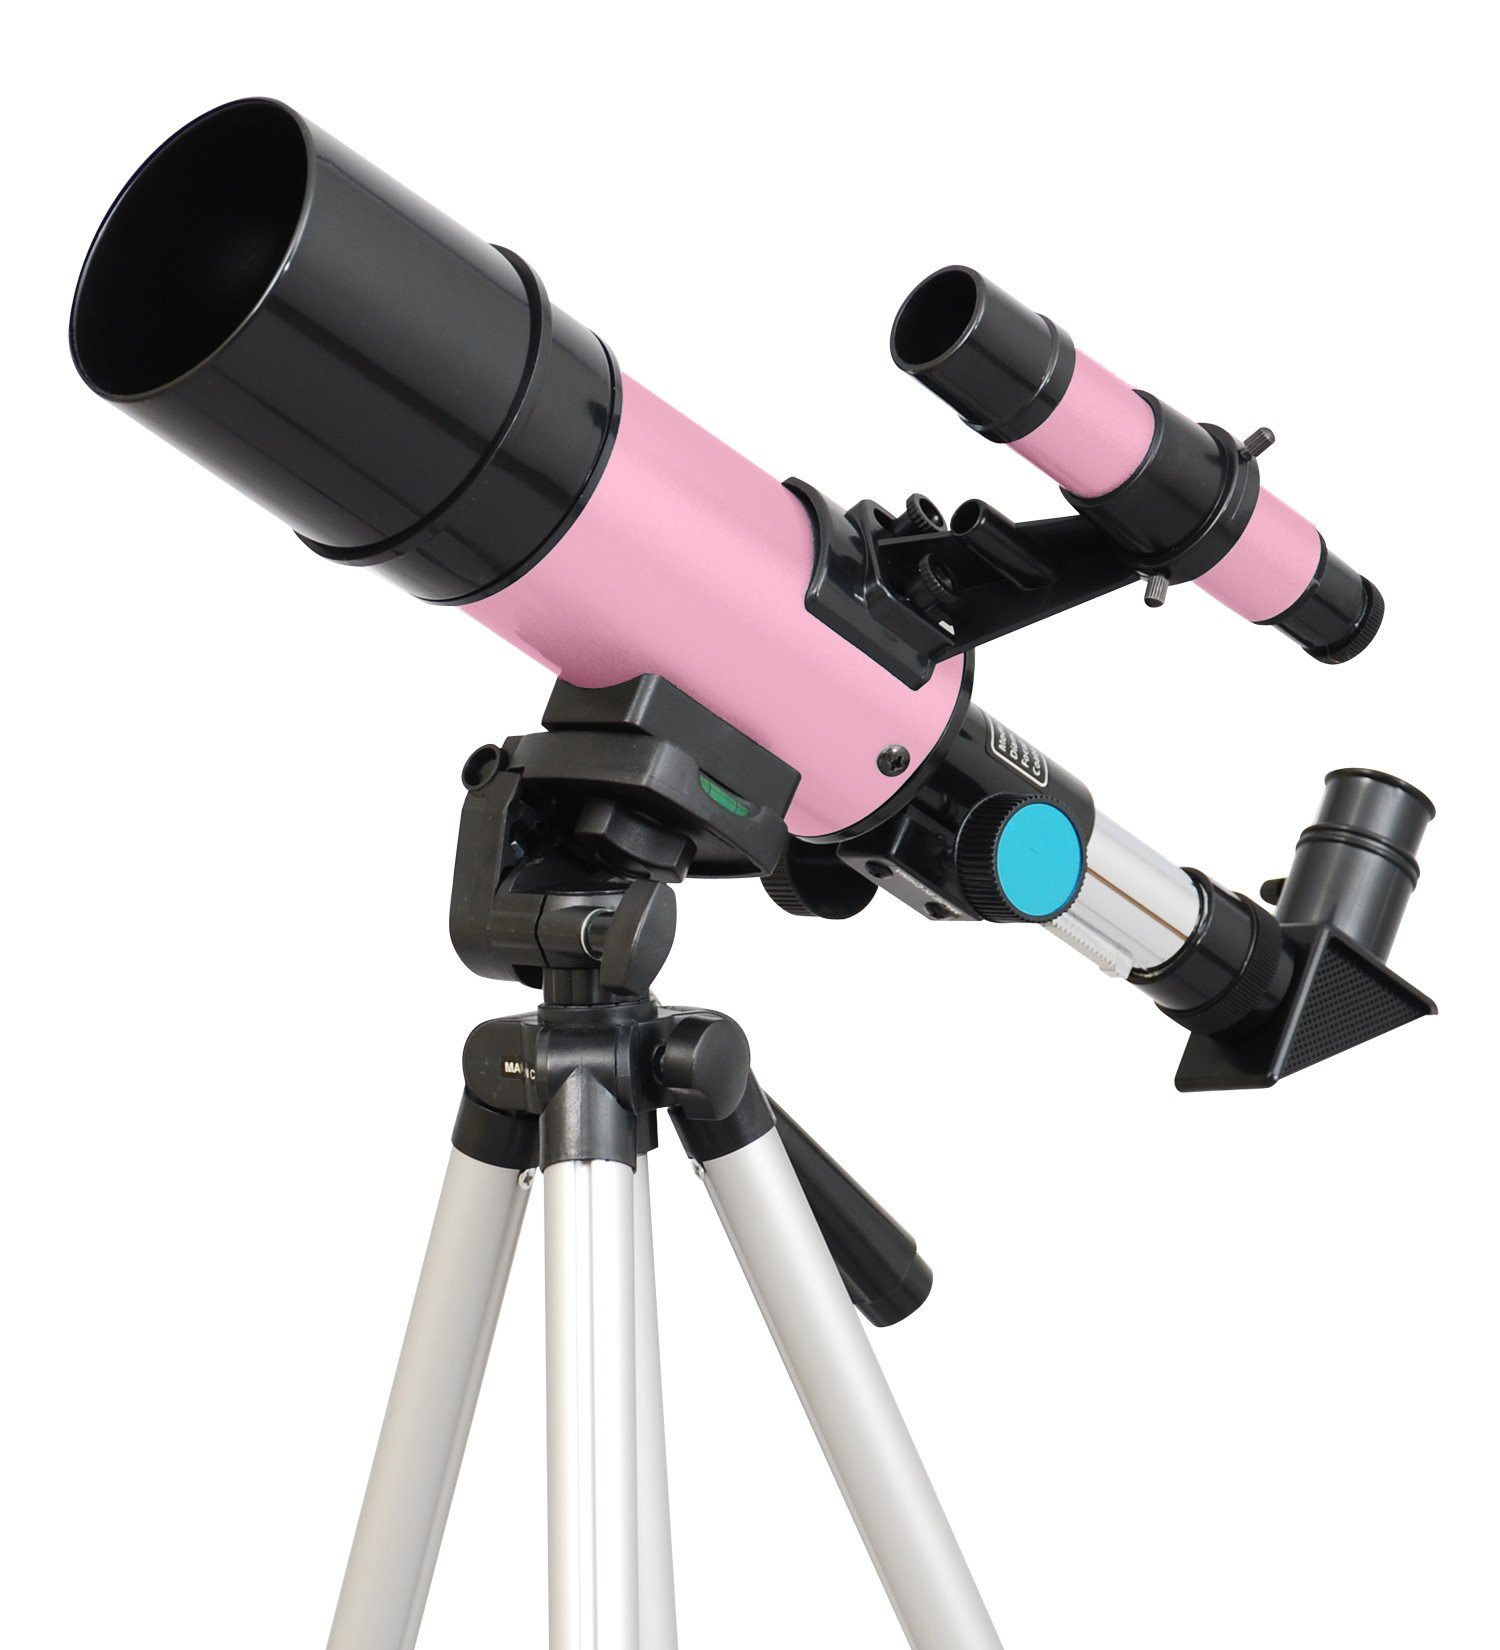 TwinStar 60mm Refractor Telescope 300mm Focal Length | 15x and 50x Magnification Eye Pieces Included | Easy, Light Weight and Includes Aluminum Tripod | Great for Kids by Twin Star